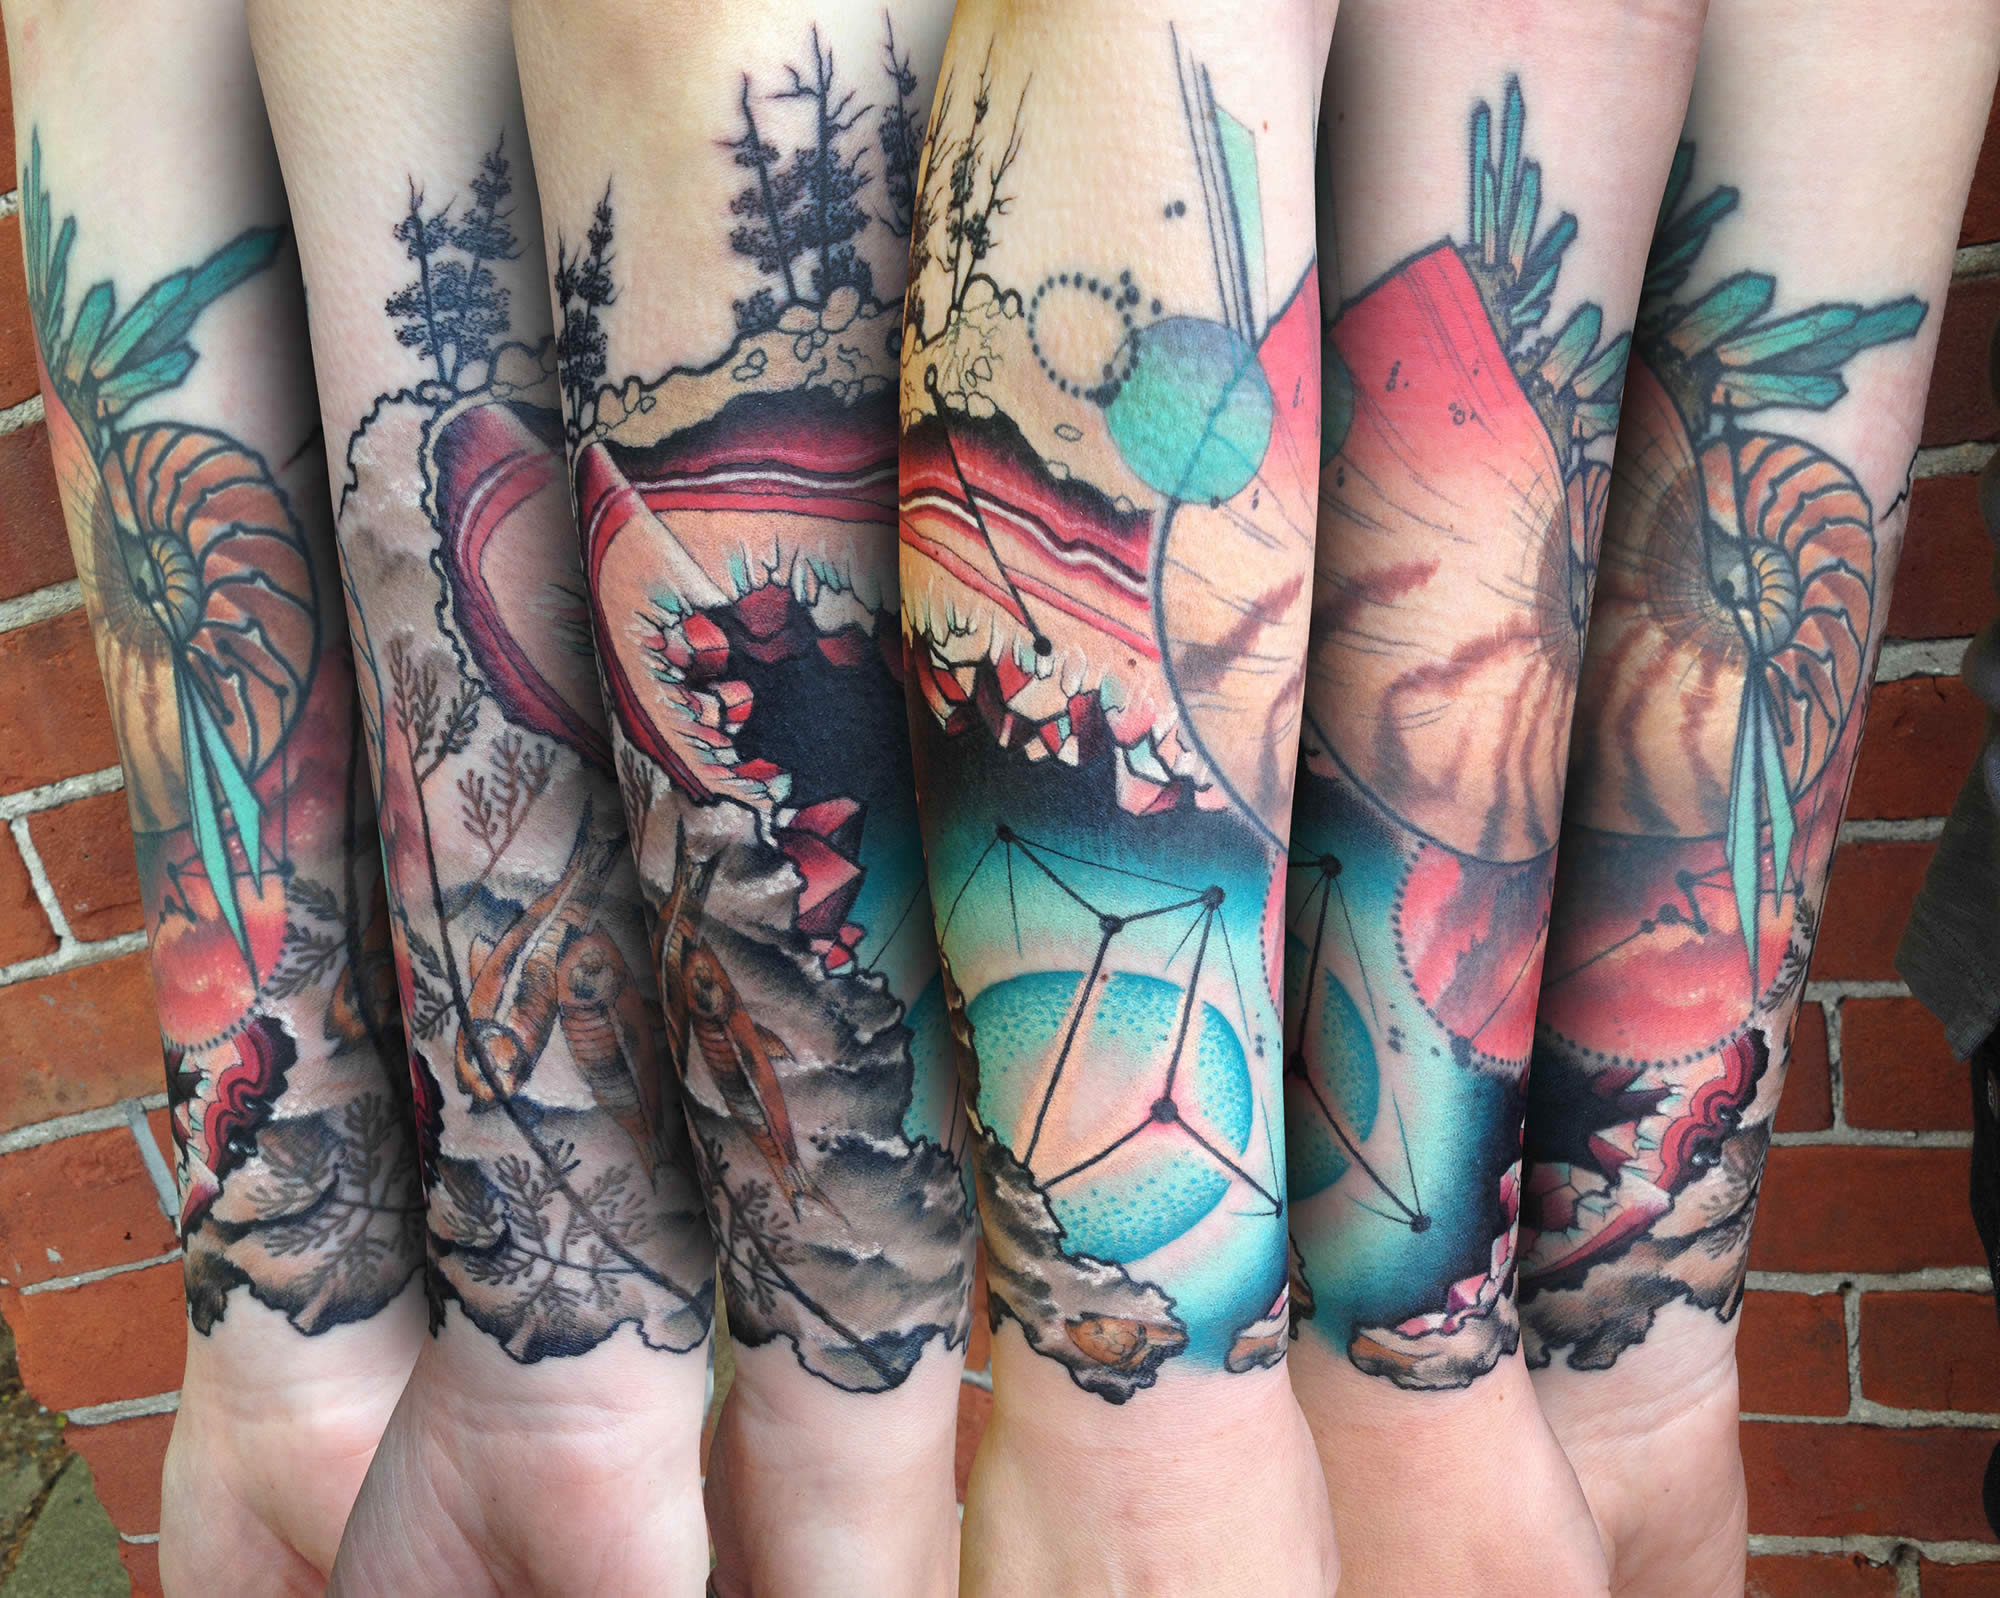 cellestial, rock gemstone, trees, nature tattoo by cody eich